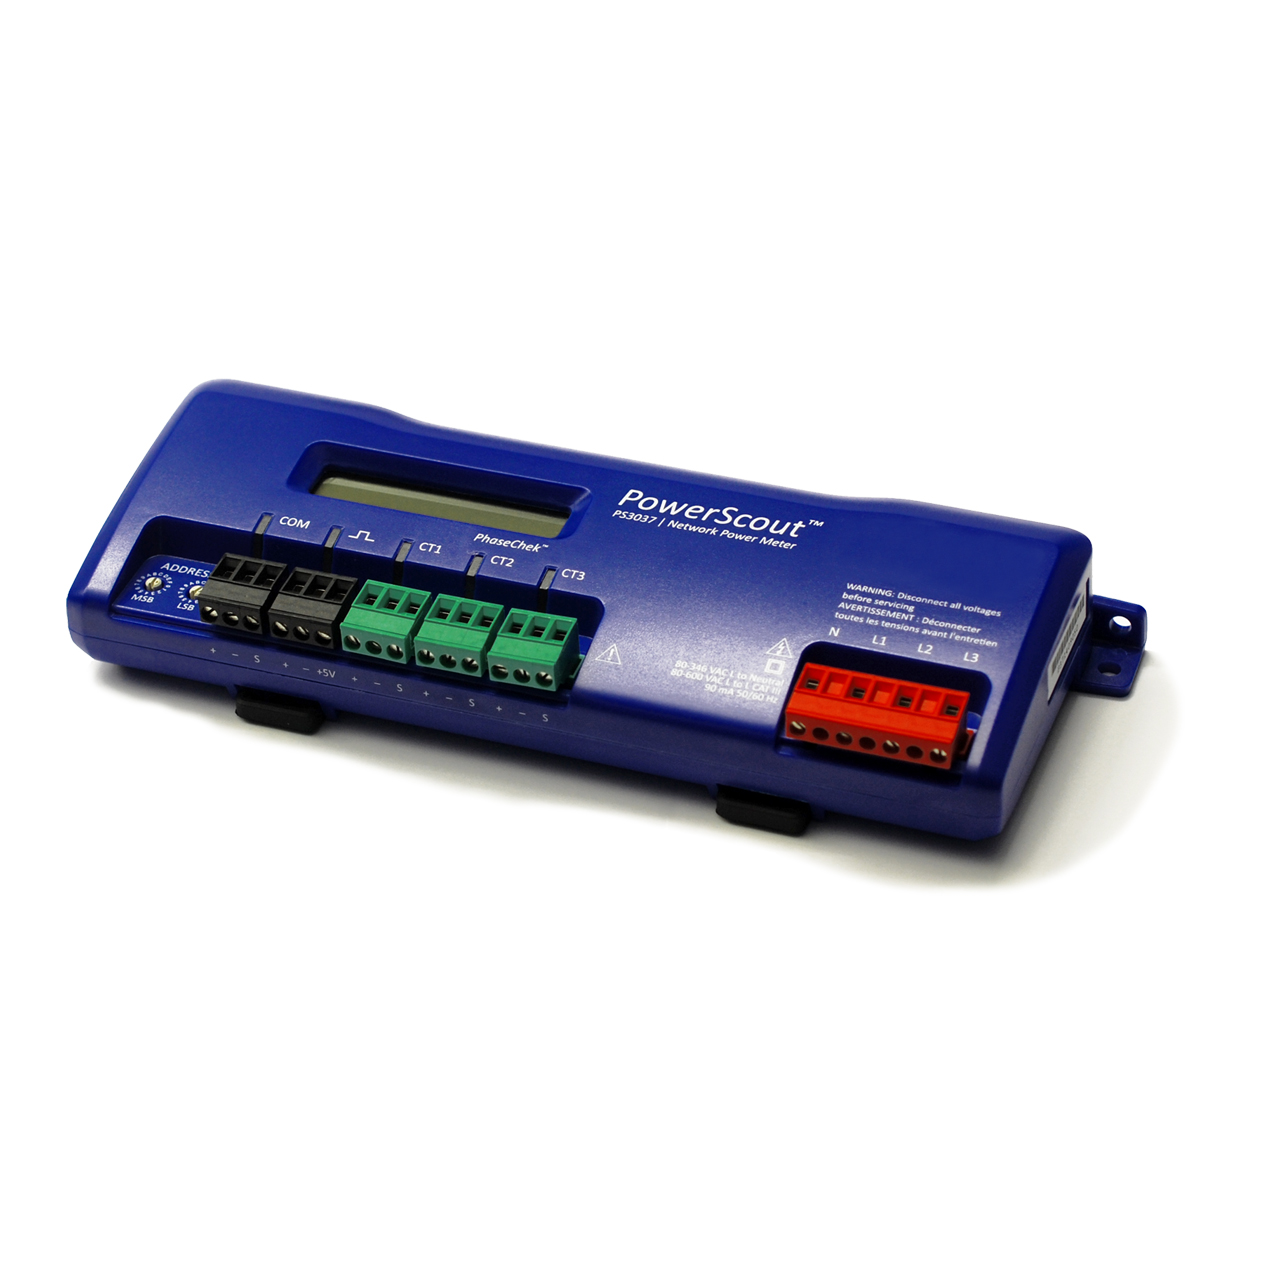 carrier-NSA-3-POWER-3-channel-power-meter